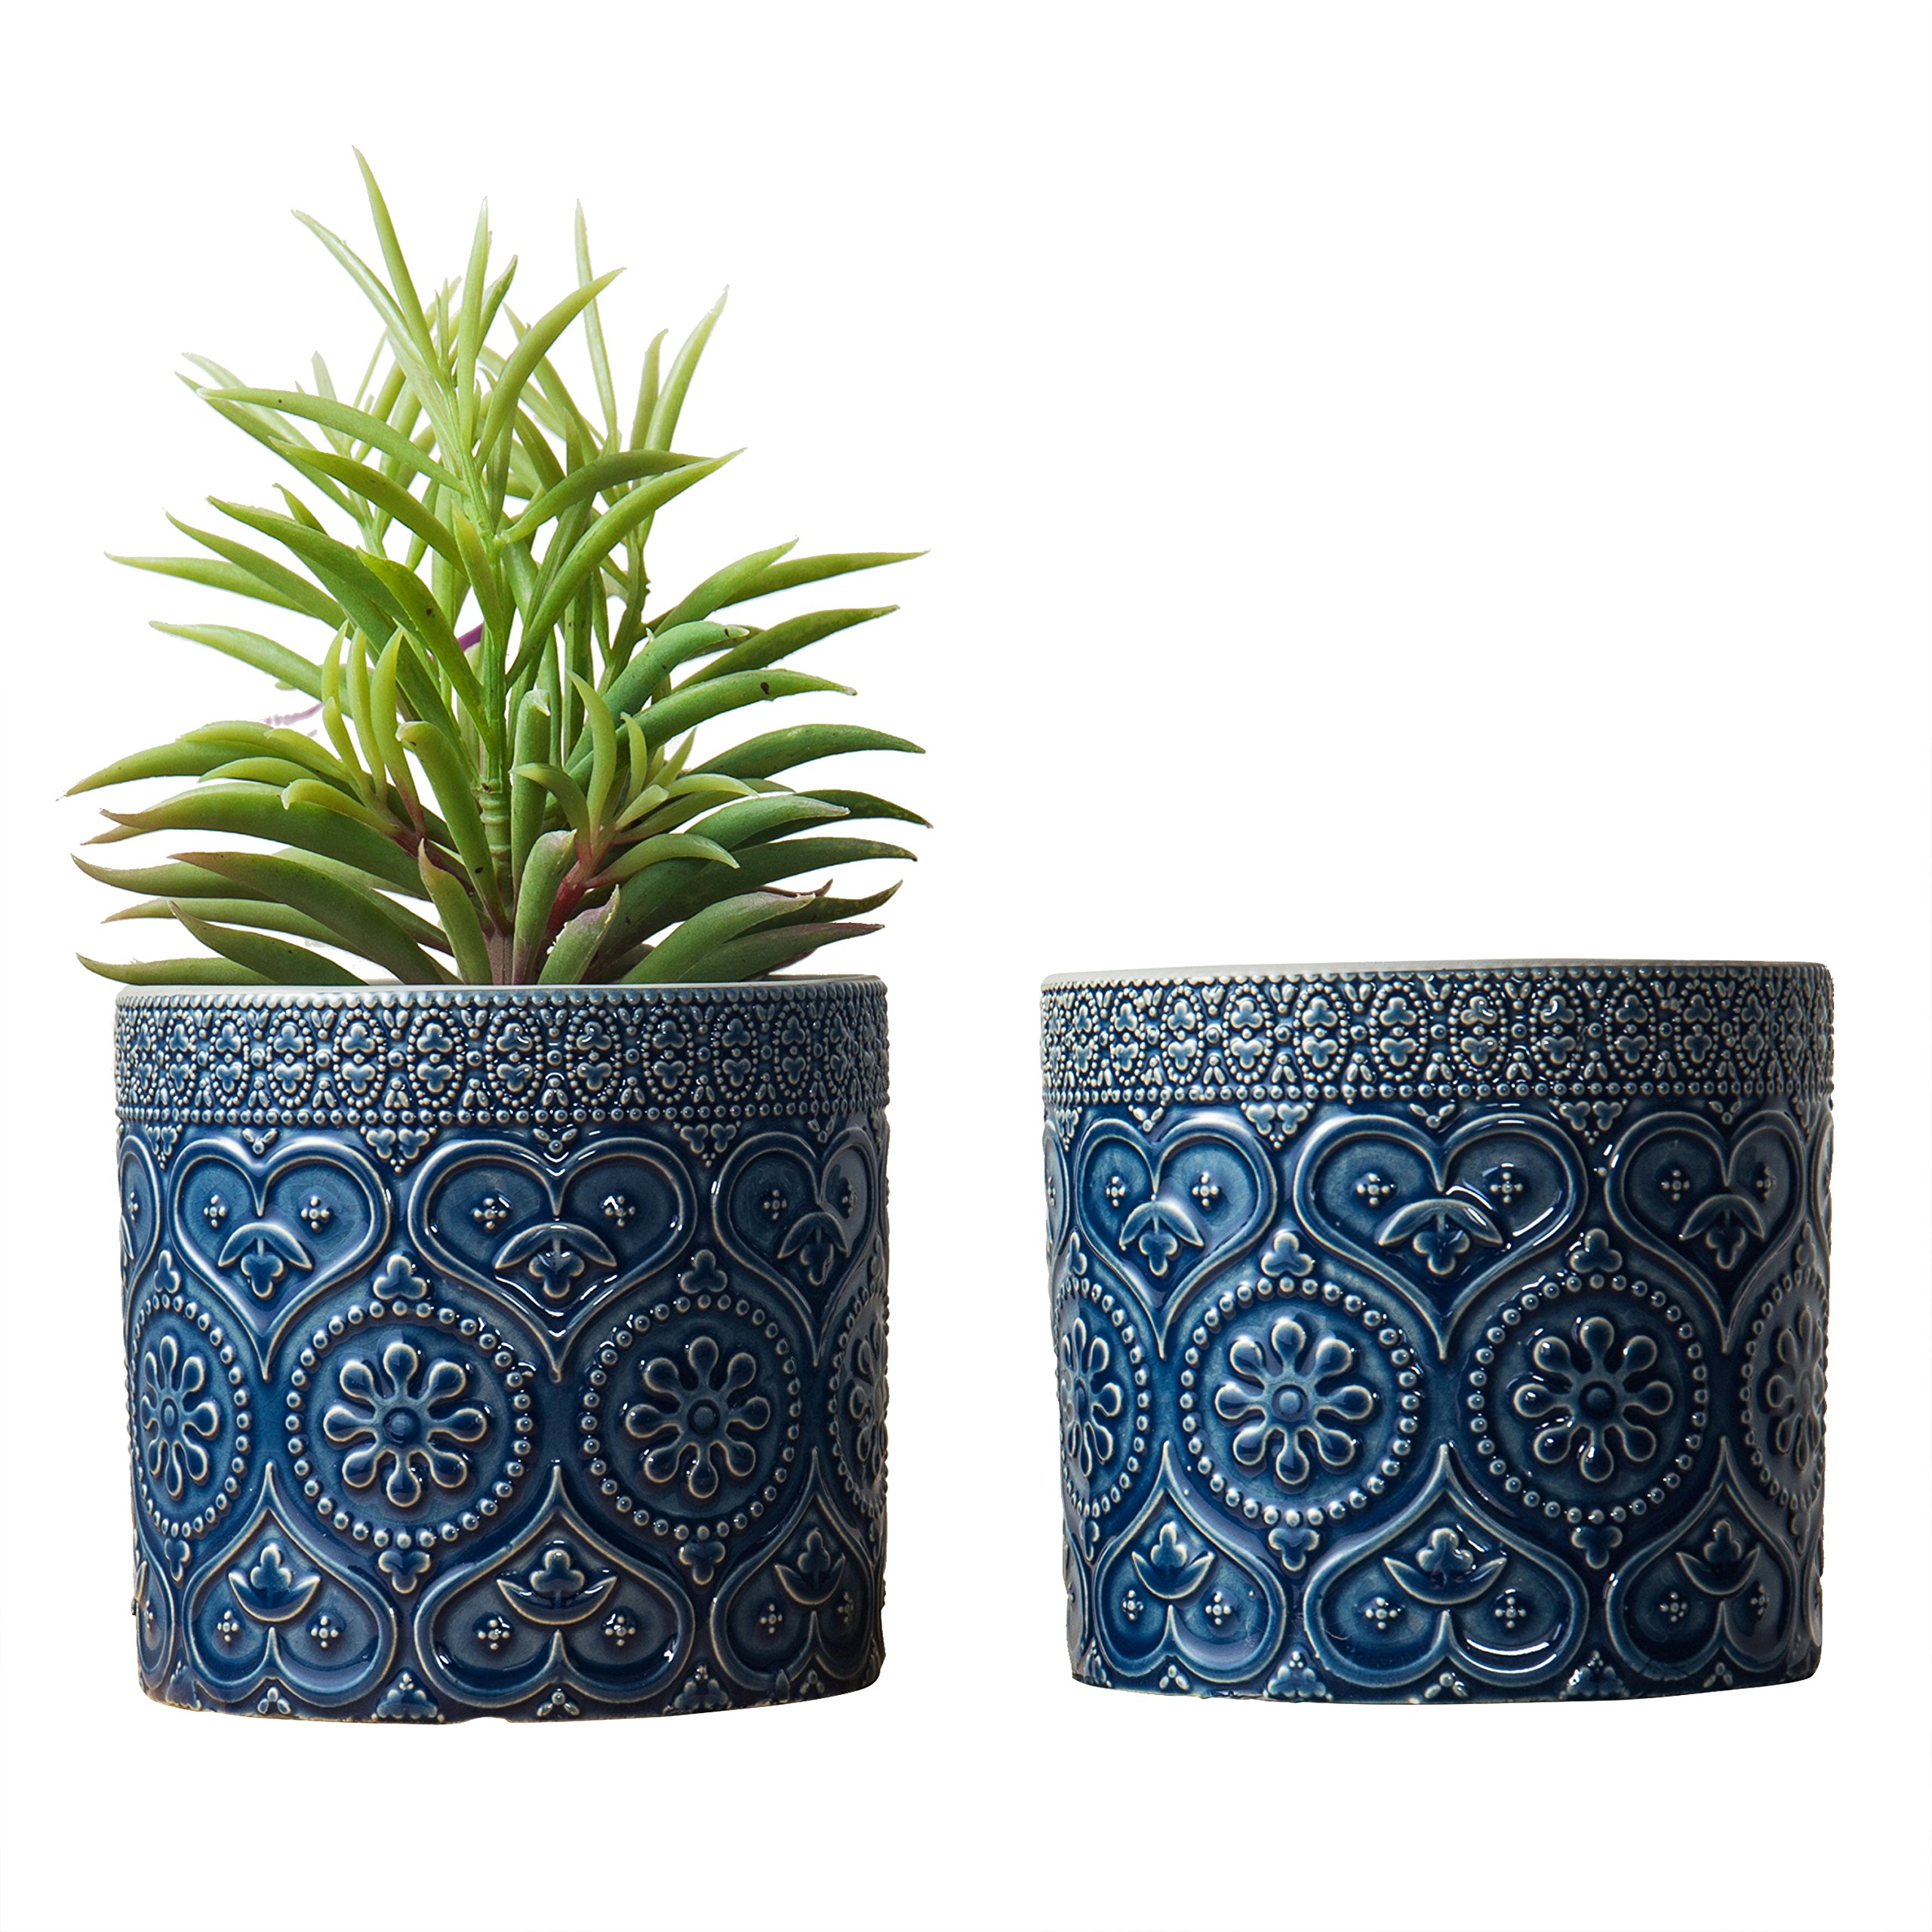 MyGift 4-Inch Cobalt Blue Ceramic Floral Embossed Succulent Planter Pots, Set of 2 by MyGift (Image #1)